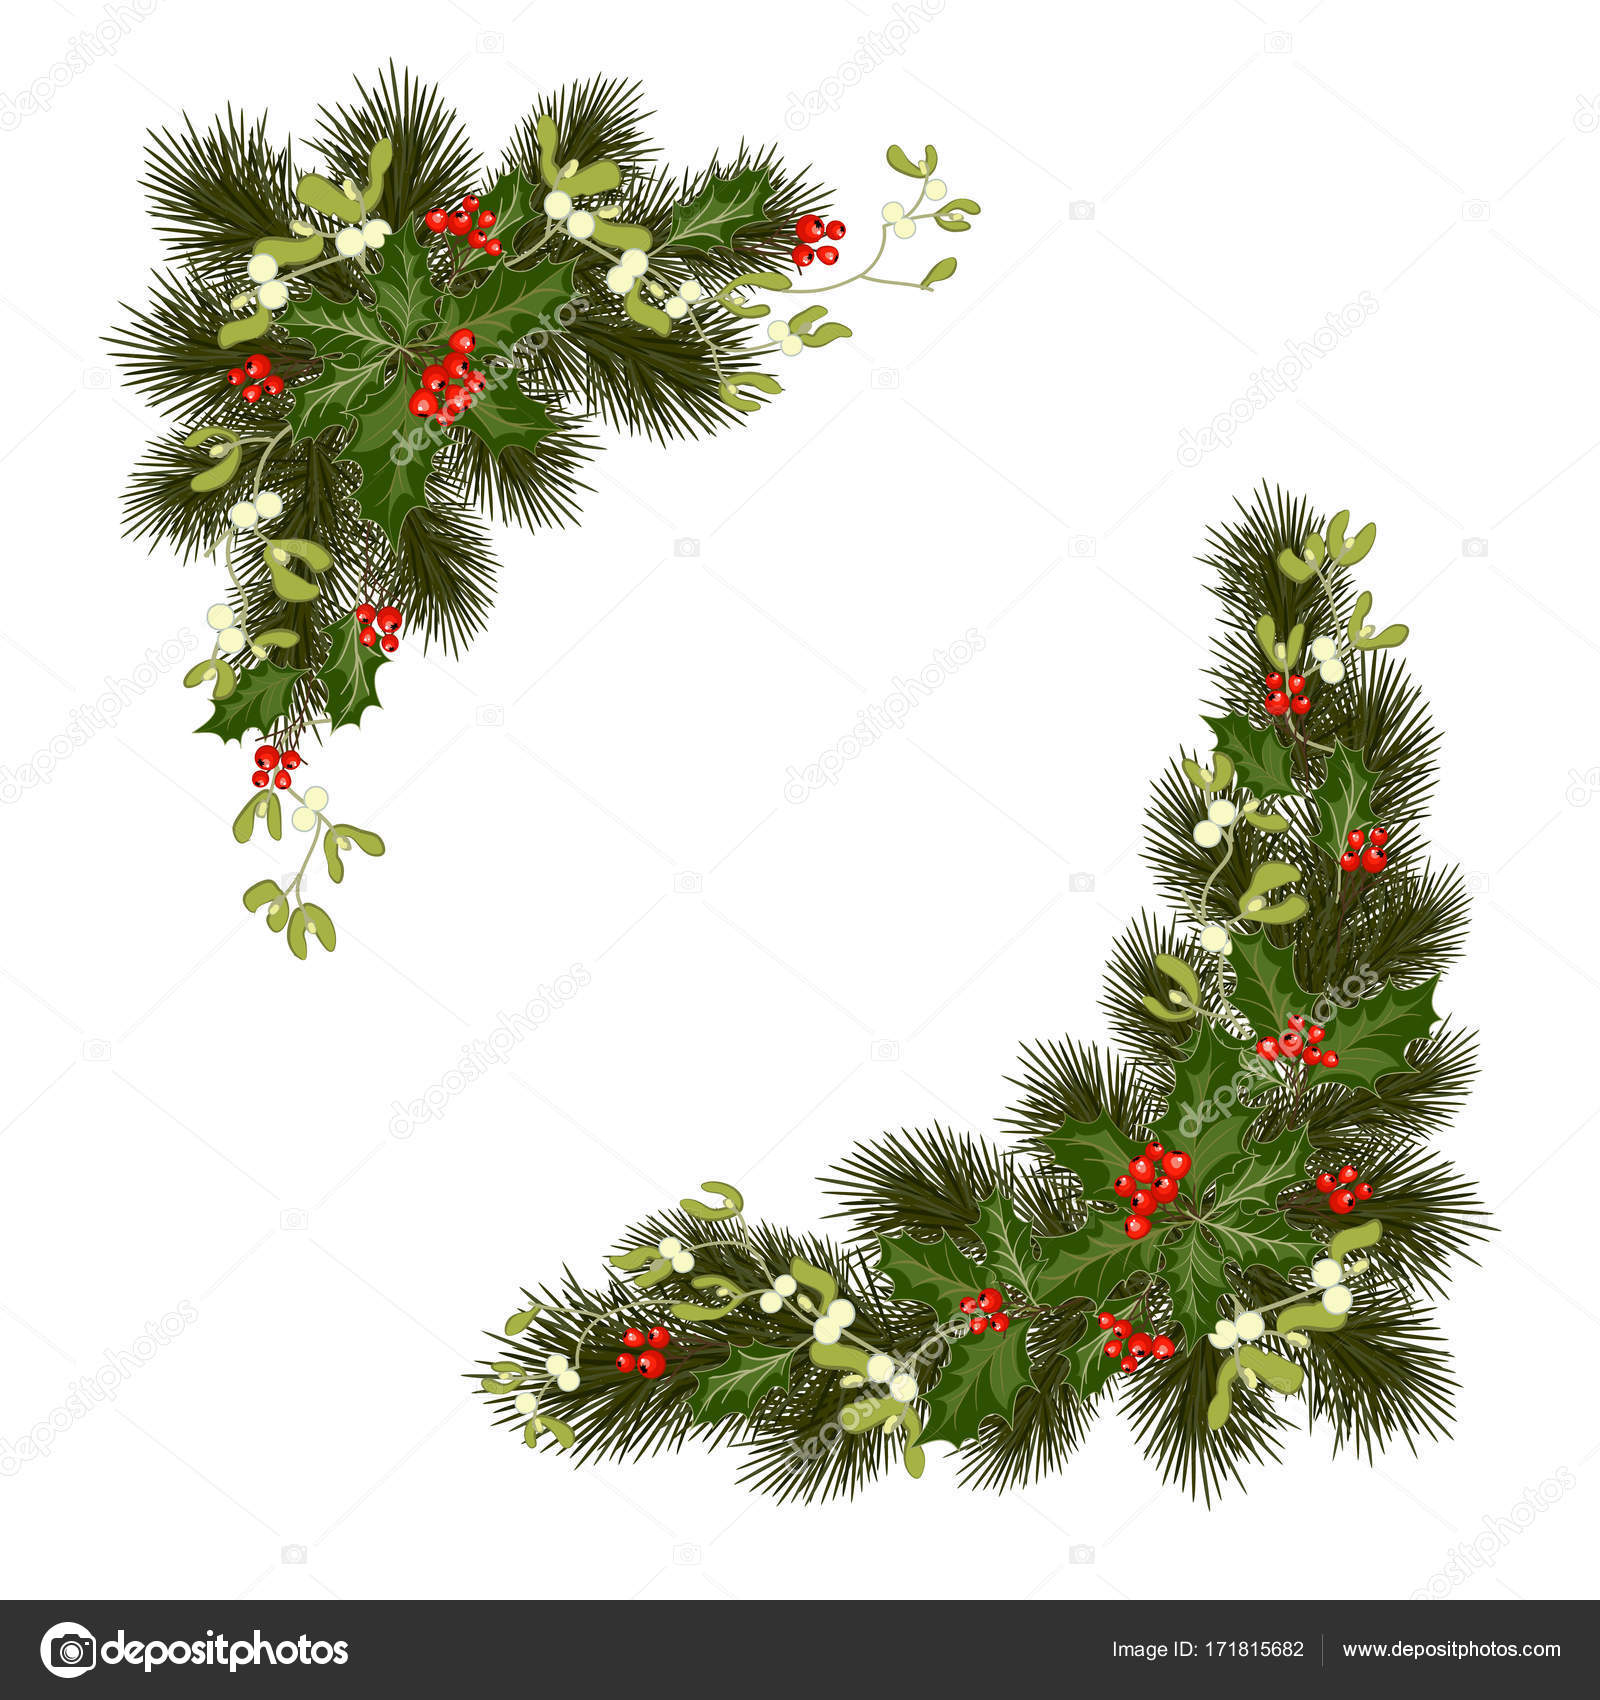 christmas decorations with fir tree holly berries mistletoe and decorative elements design element for christmas decoration